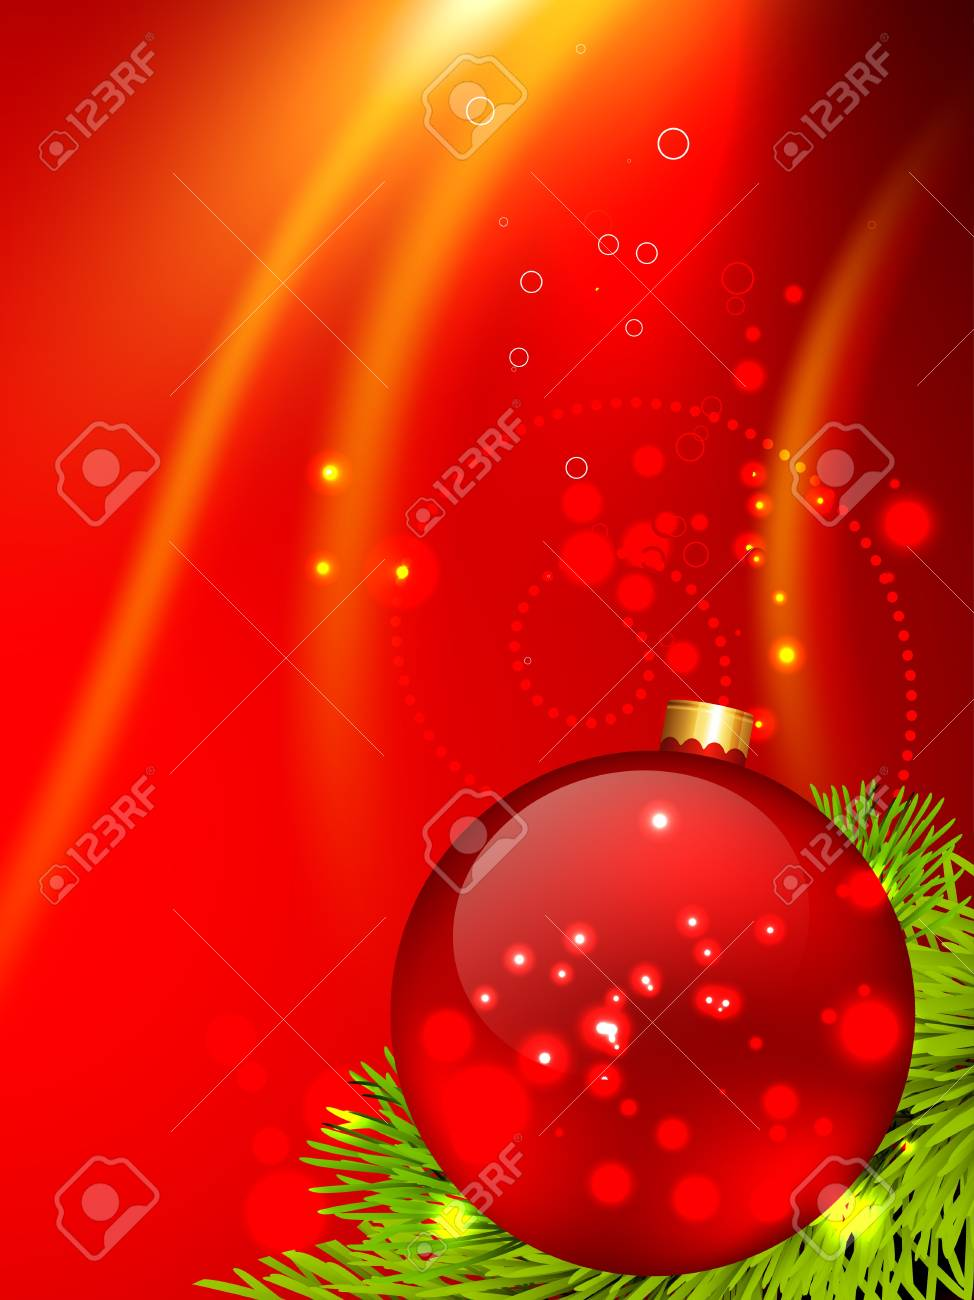 Beautiful Christmas Background Design.Beautiful Christmas Background Design With Space For Your Text